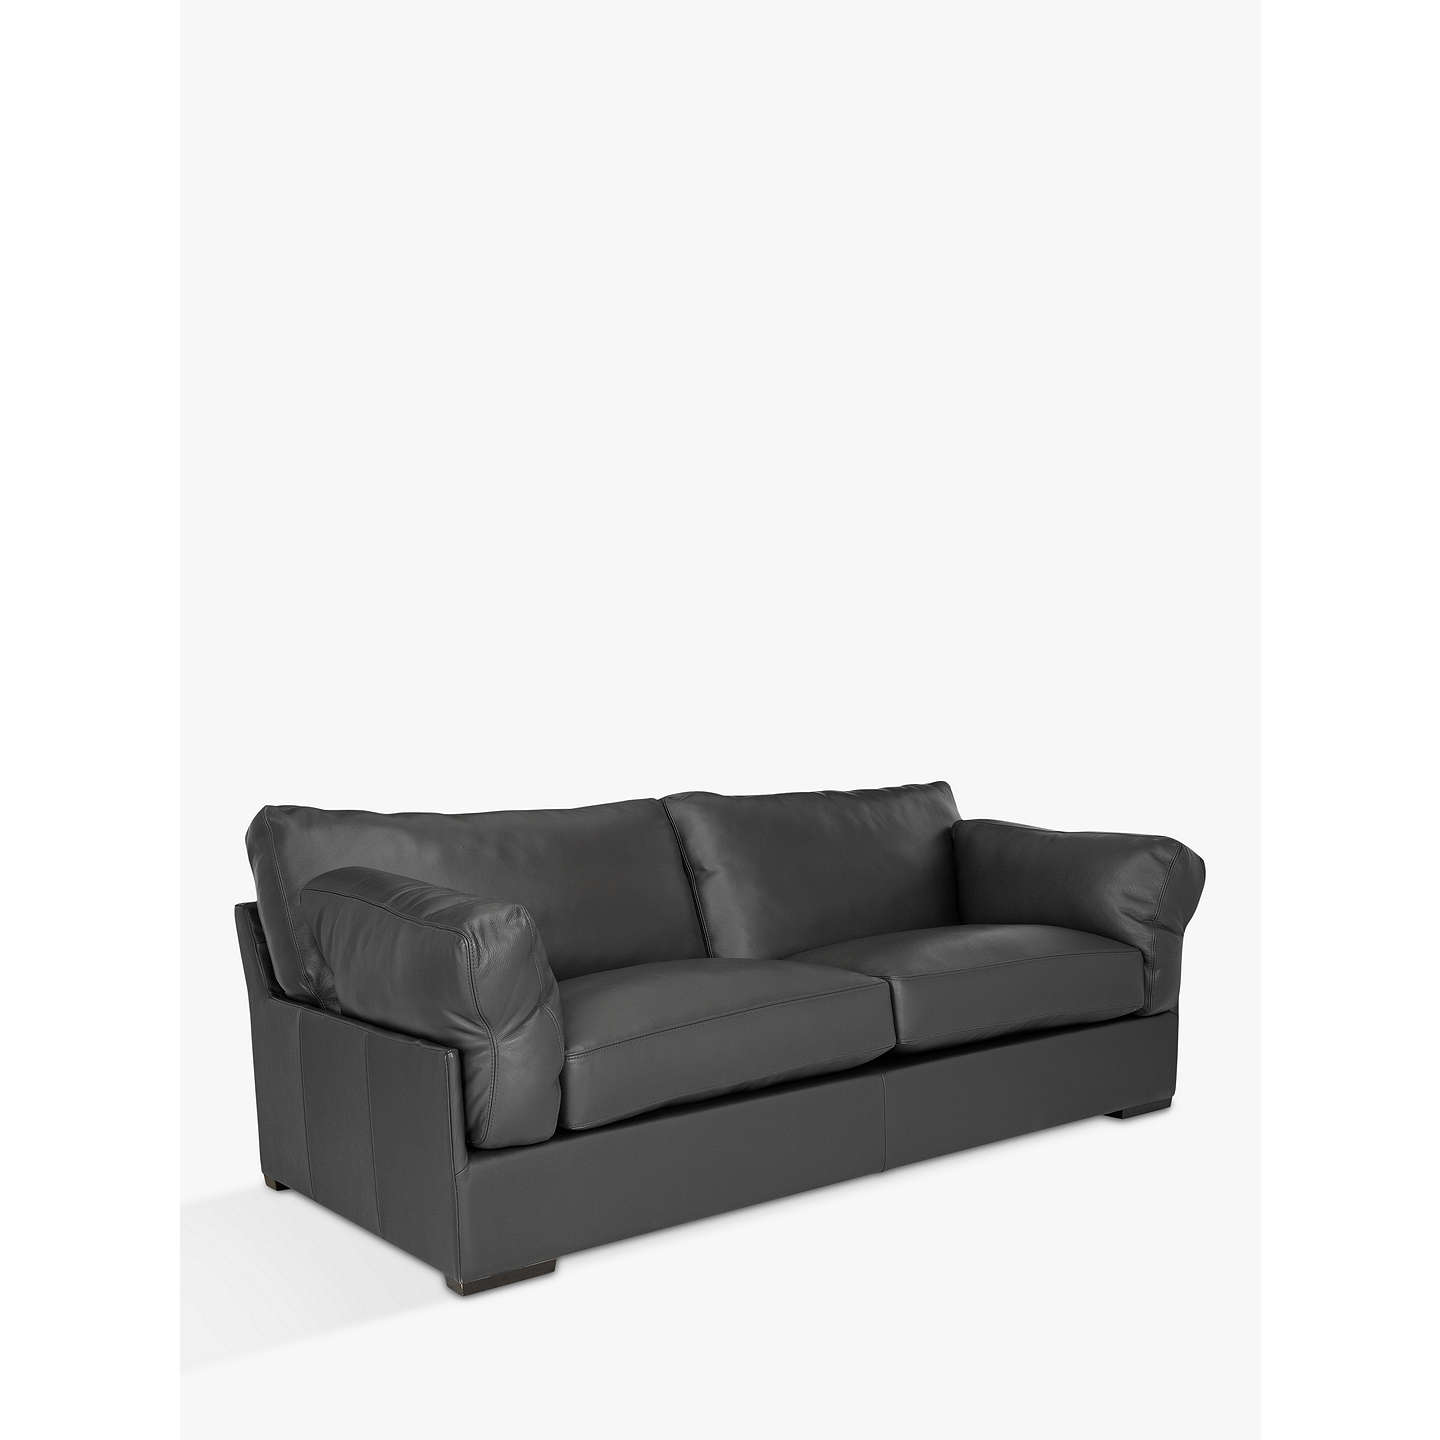 Grand Furniture Winchester: Leather 4 Seater Sofa Dr 4 Seater Leather Sofa The Khazana